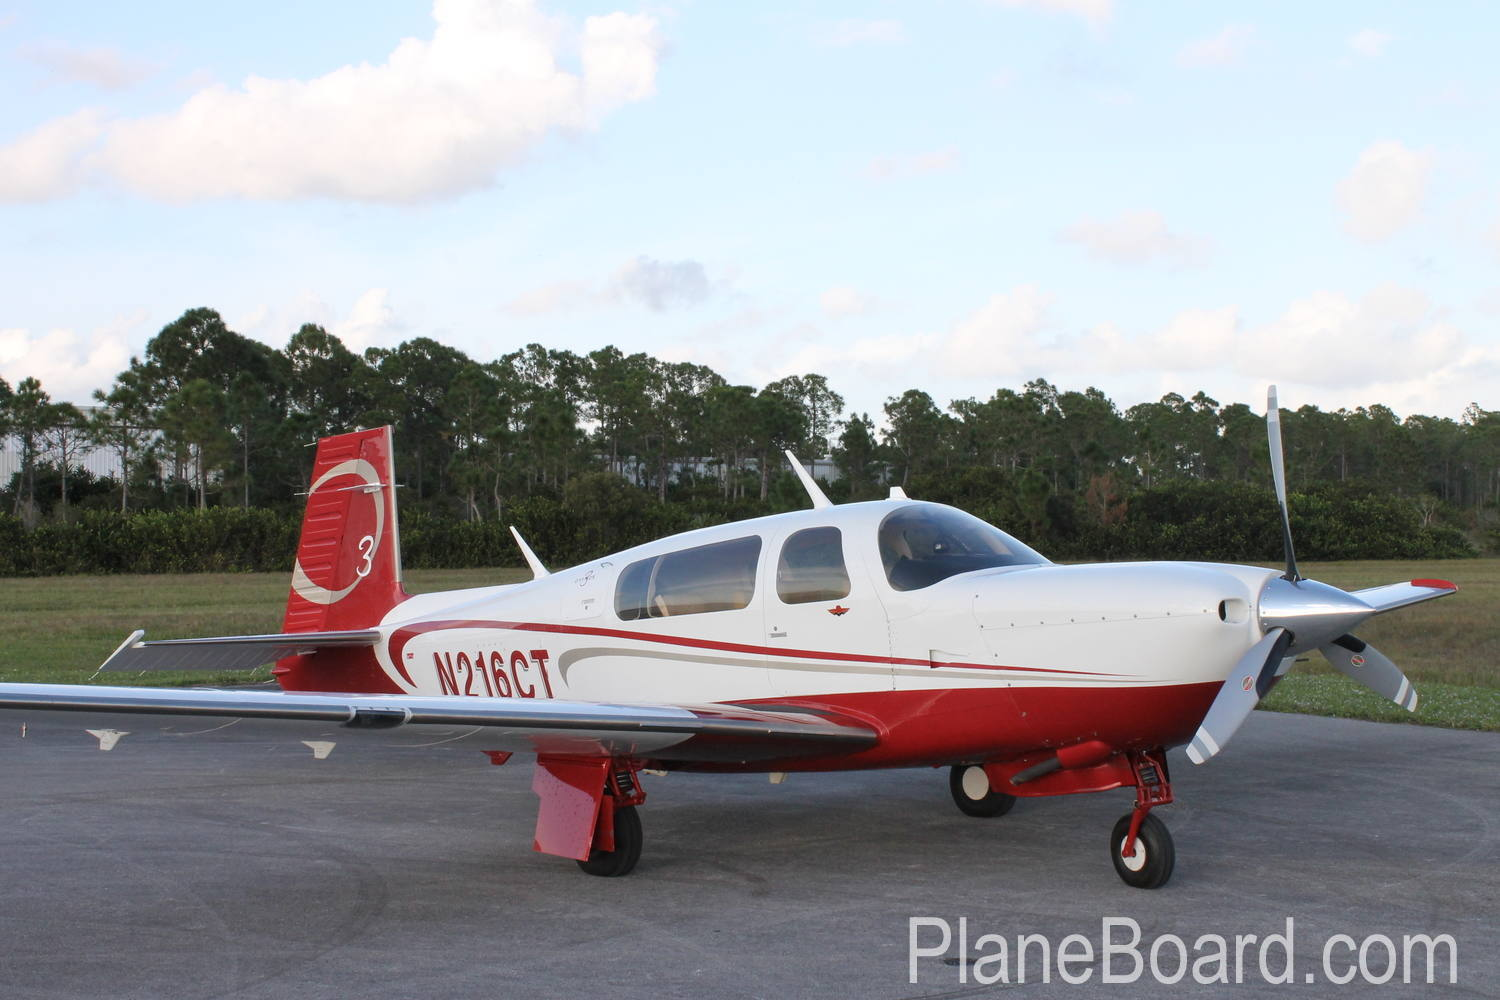 2008 Mooney M20R Ovation3 GX primary